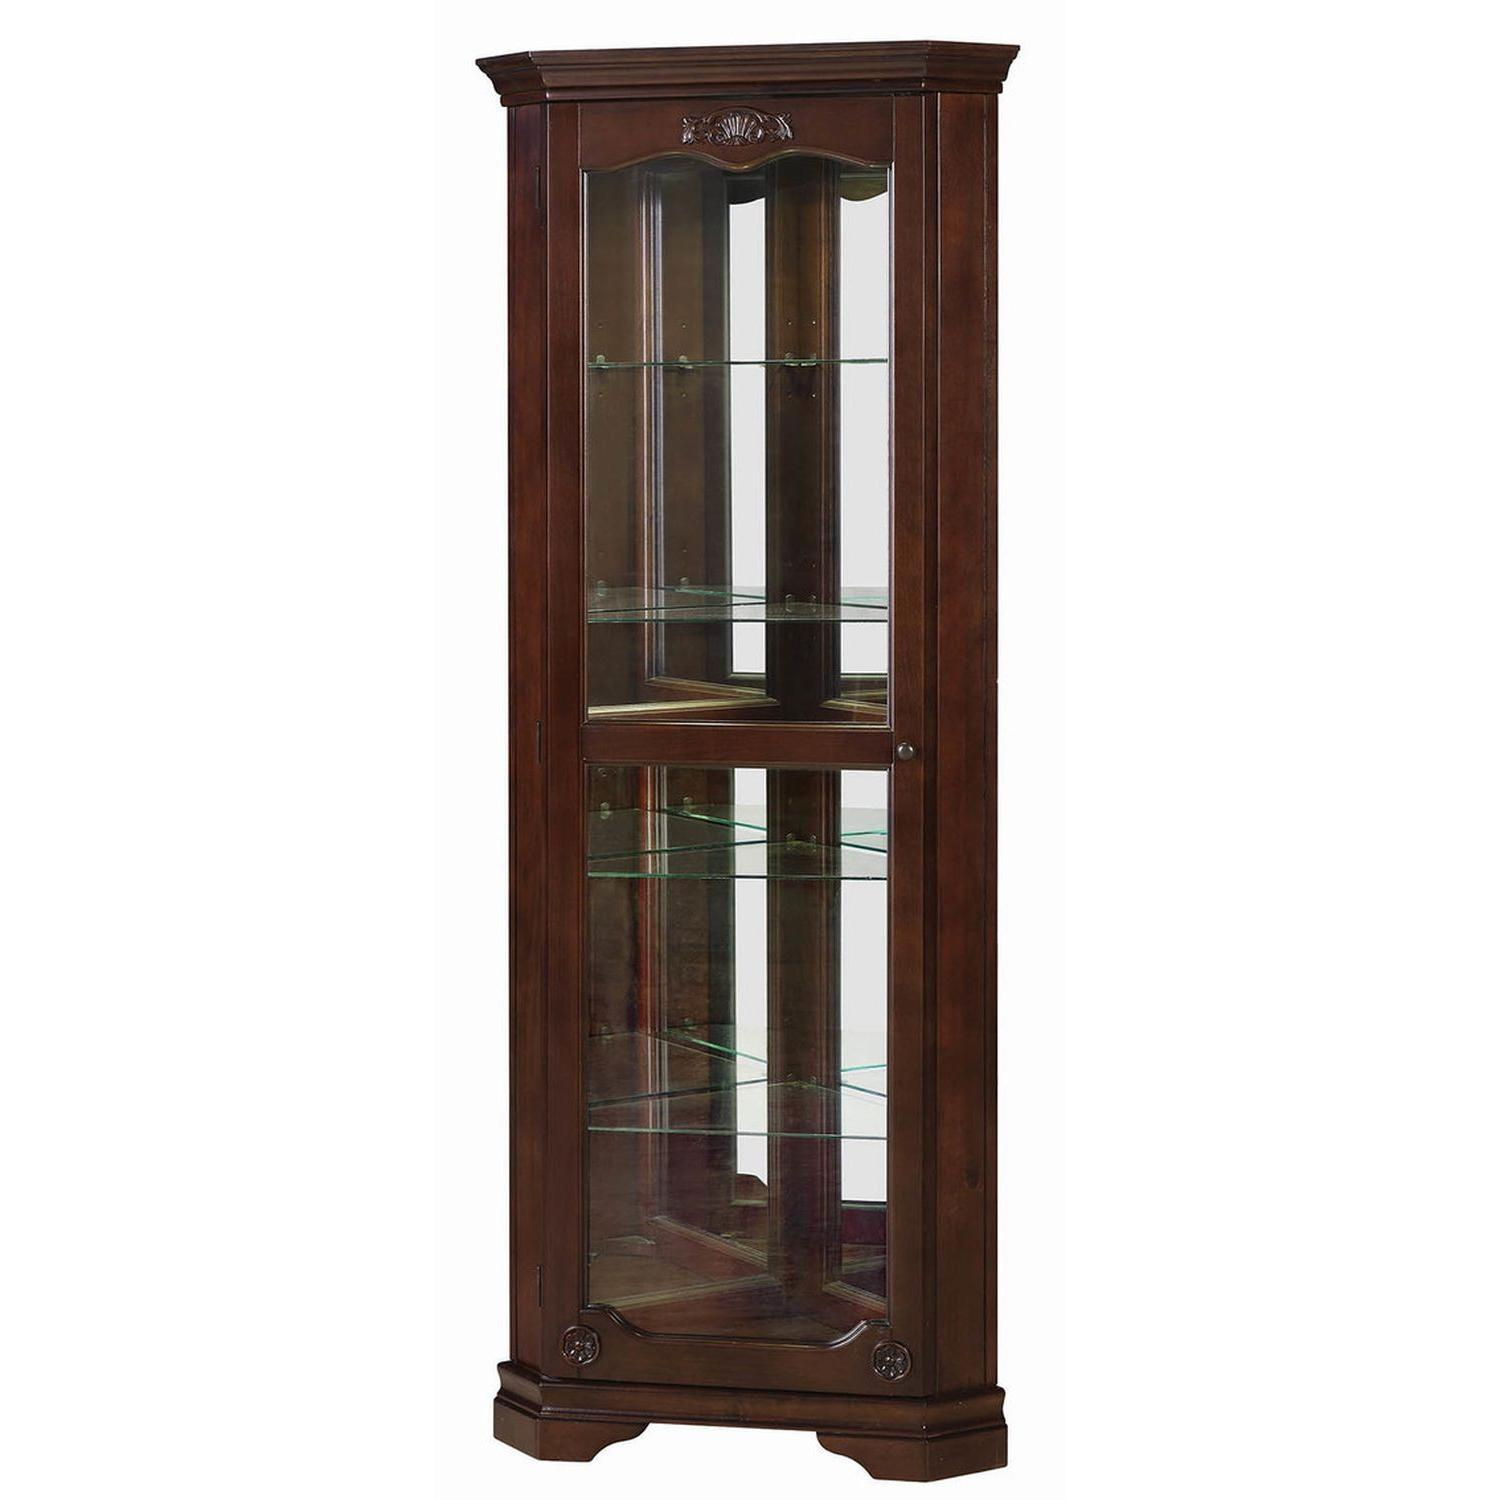 Classic Curio Cabinet in Golden Brown Finish - image-3